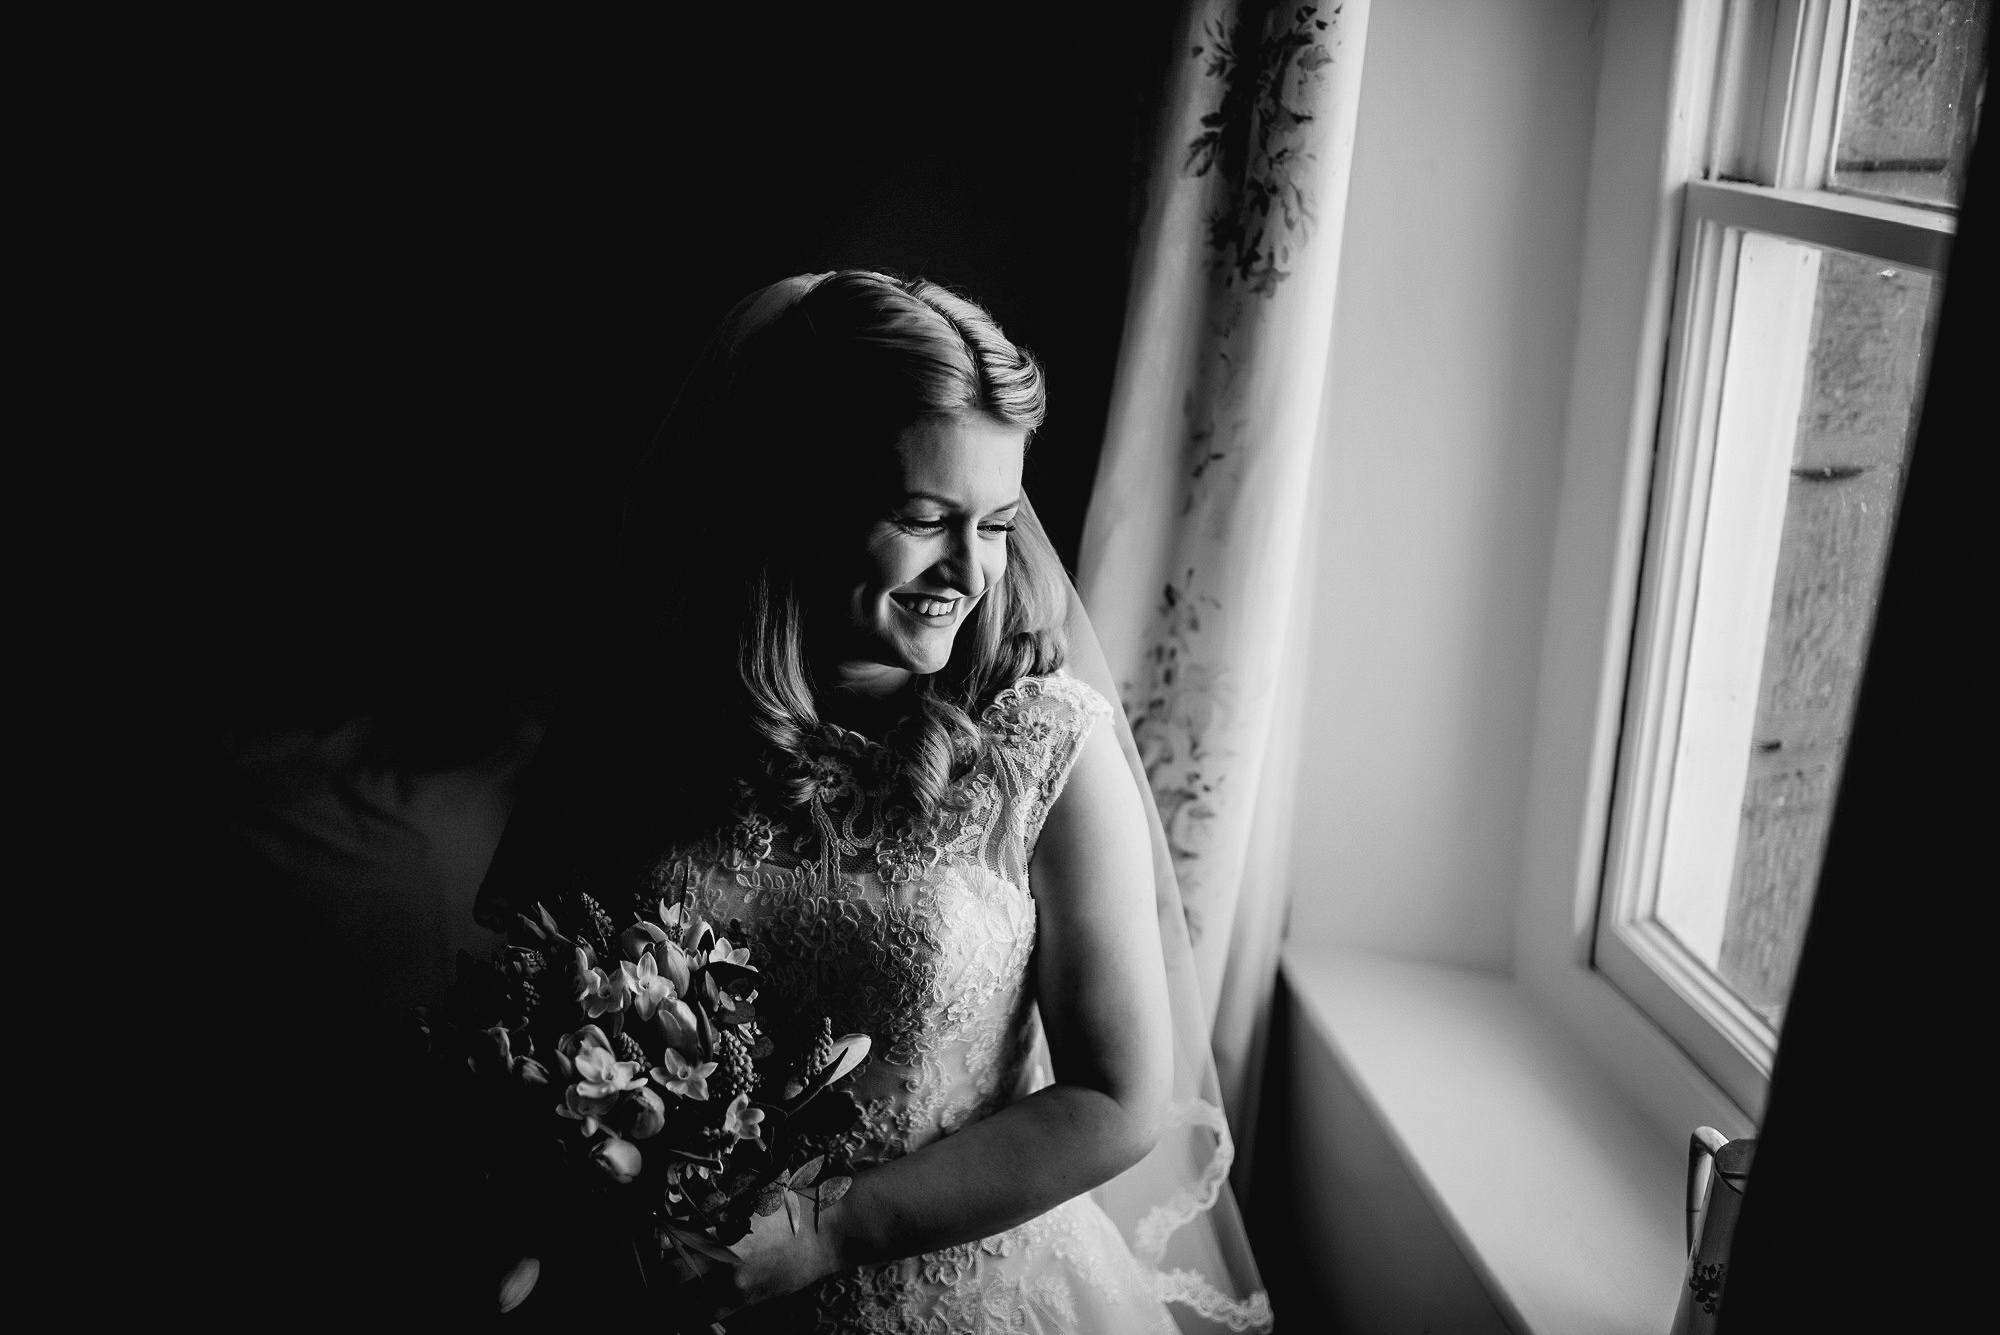 bride looking out of window in black and white